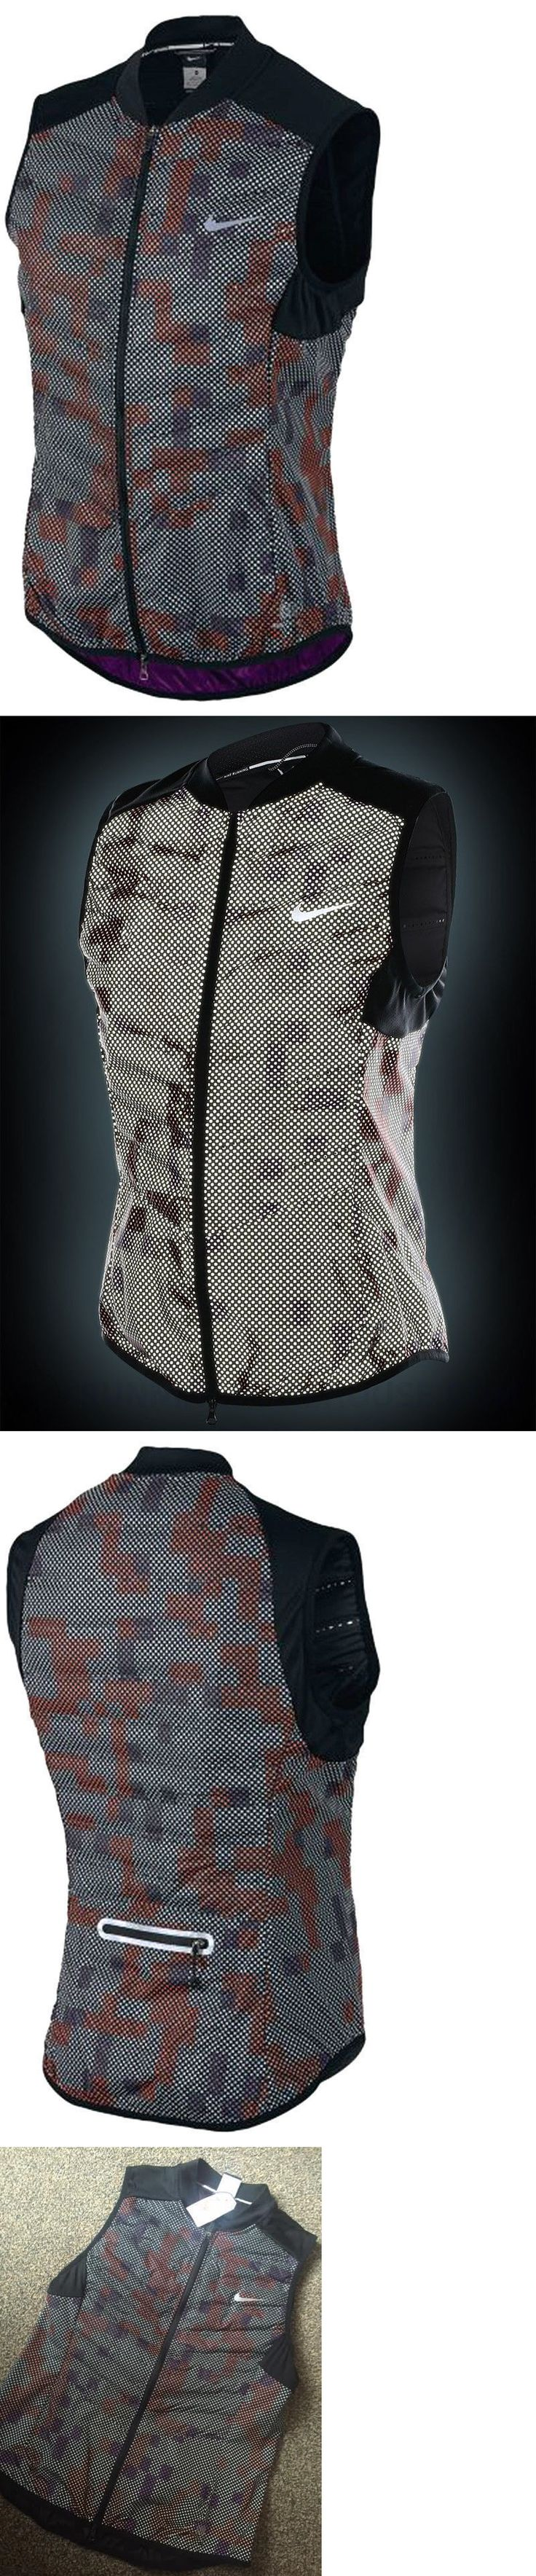 Jackets and Vests 59285: Nike Aeroloft Flash Running Vest - Women S Large $280.00 ~ 689260 011 Reflective -> BUY IT NOW ONLY: $72.95 on eBay!